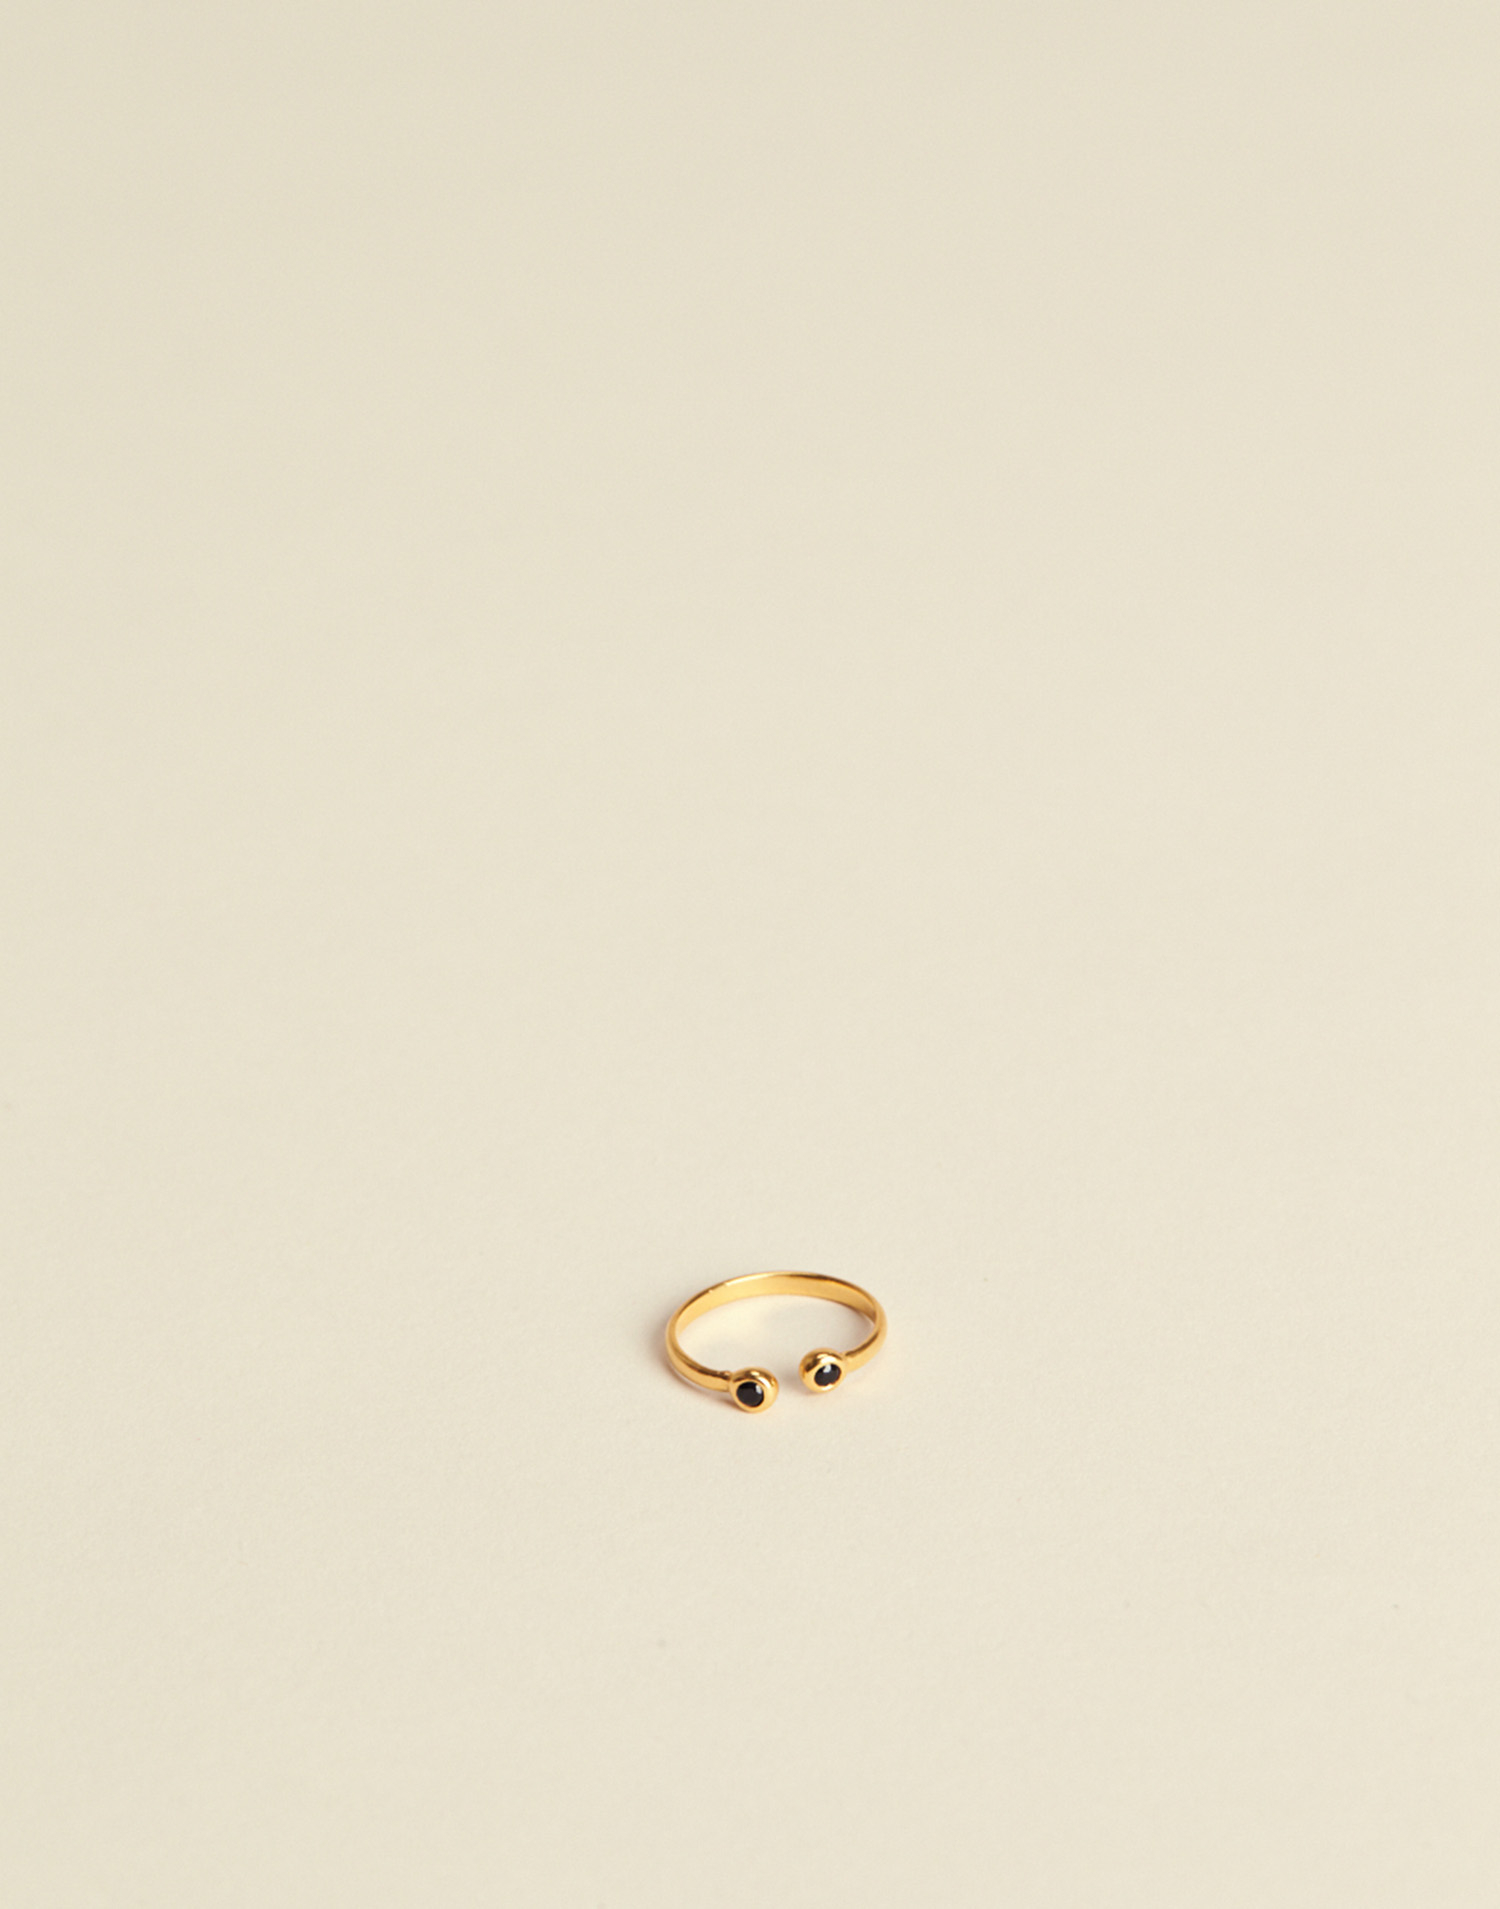 Gilded ring with stones